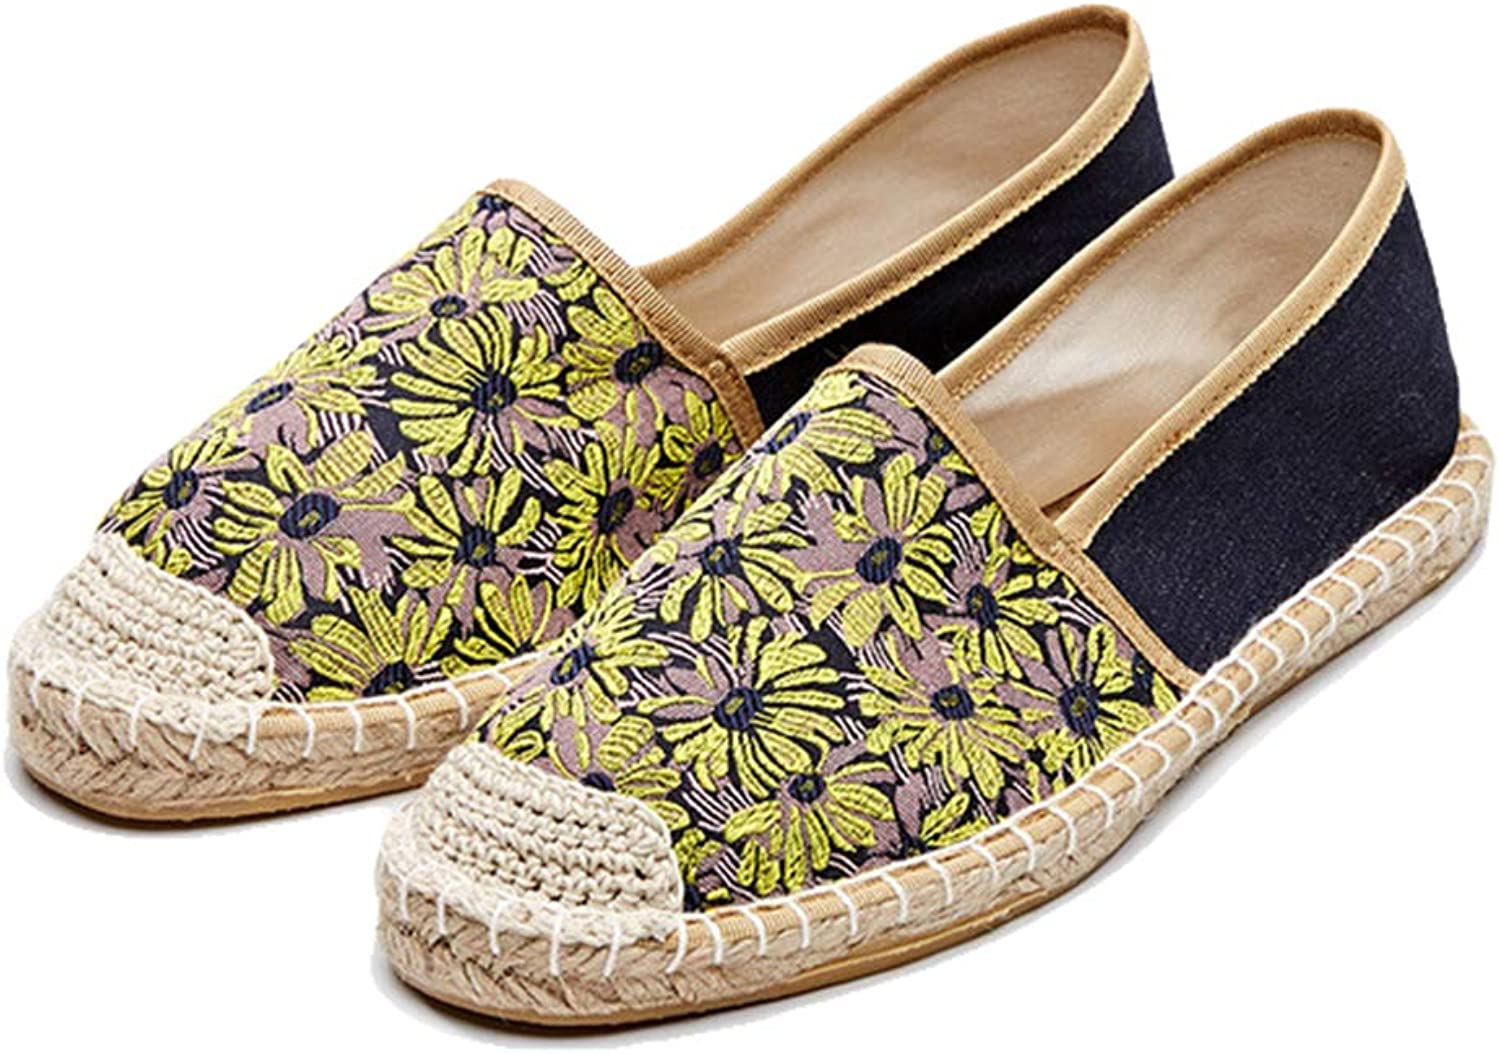 York Zhu Women Flats,Casual Espadrilles Canvas Jacquard Weave Fishermen Loafers shoes